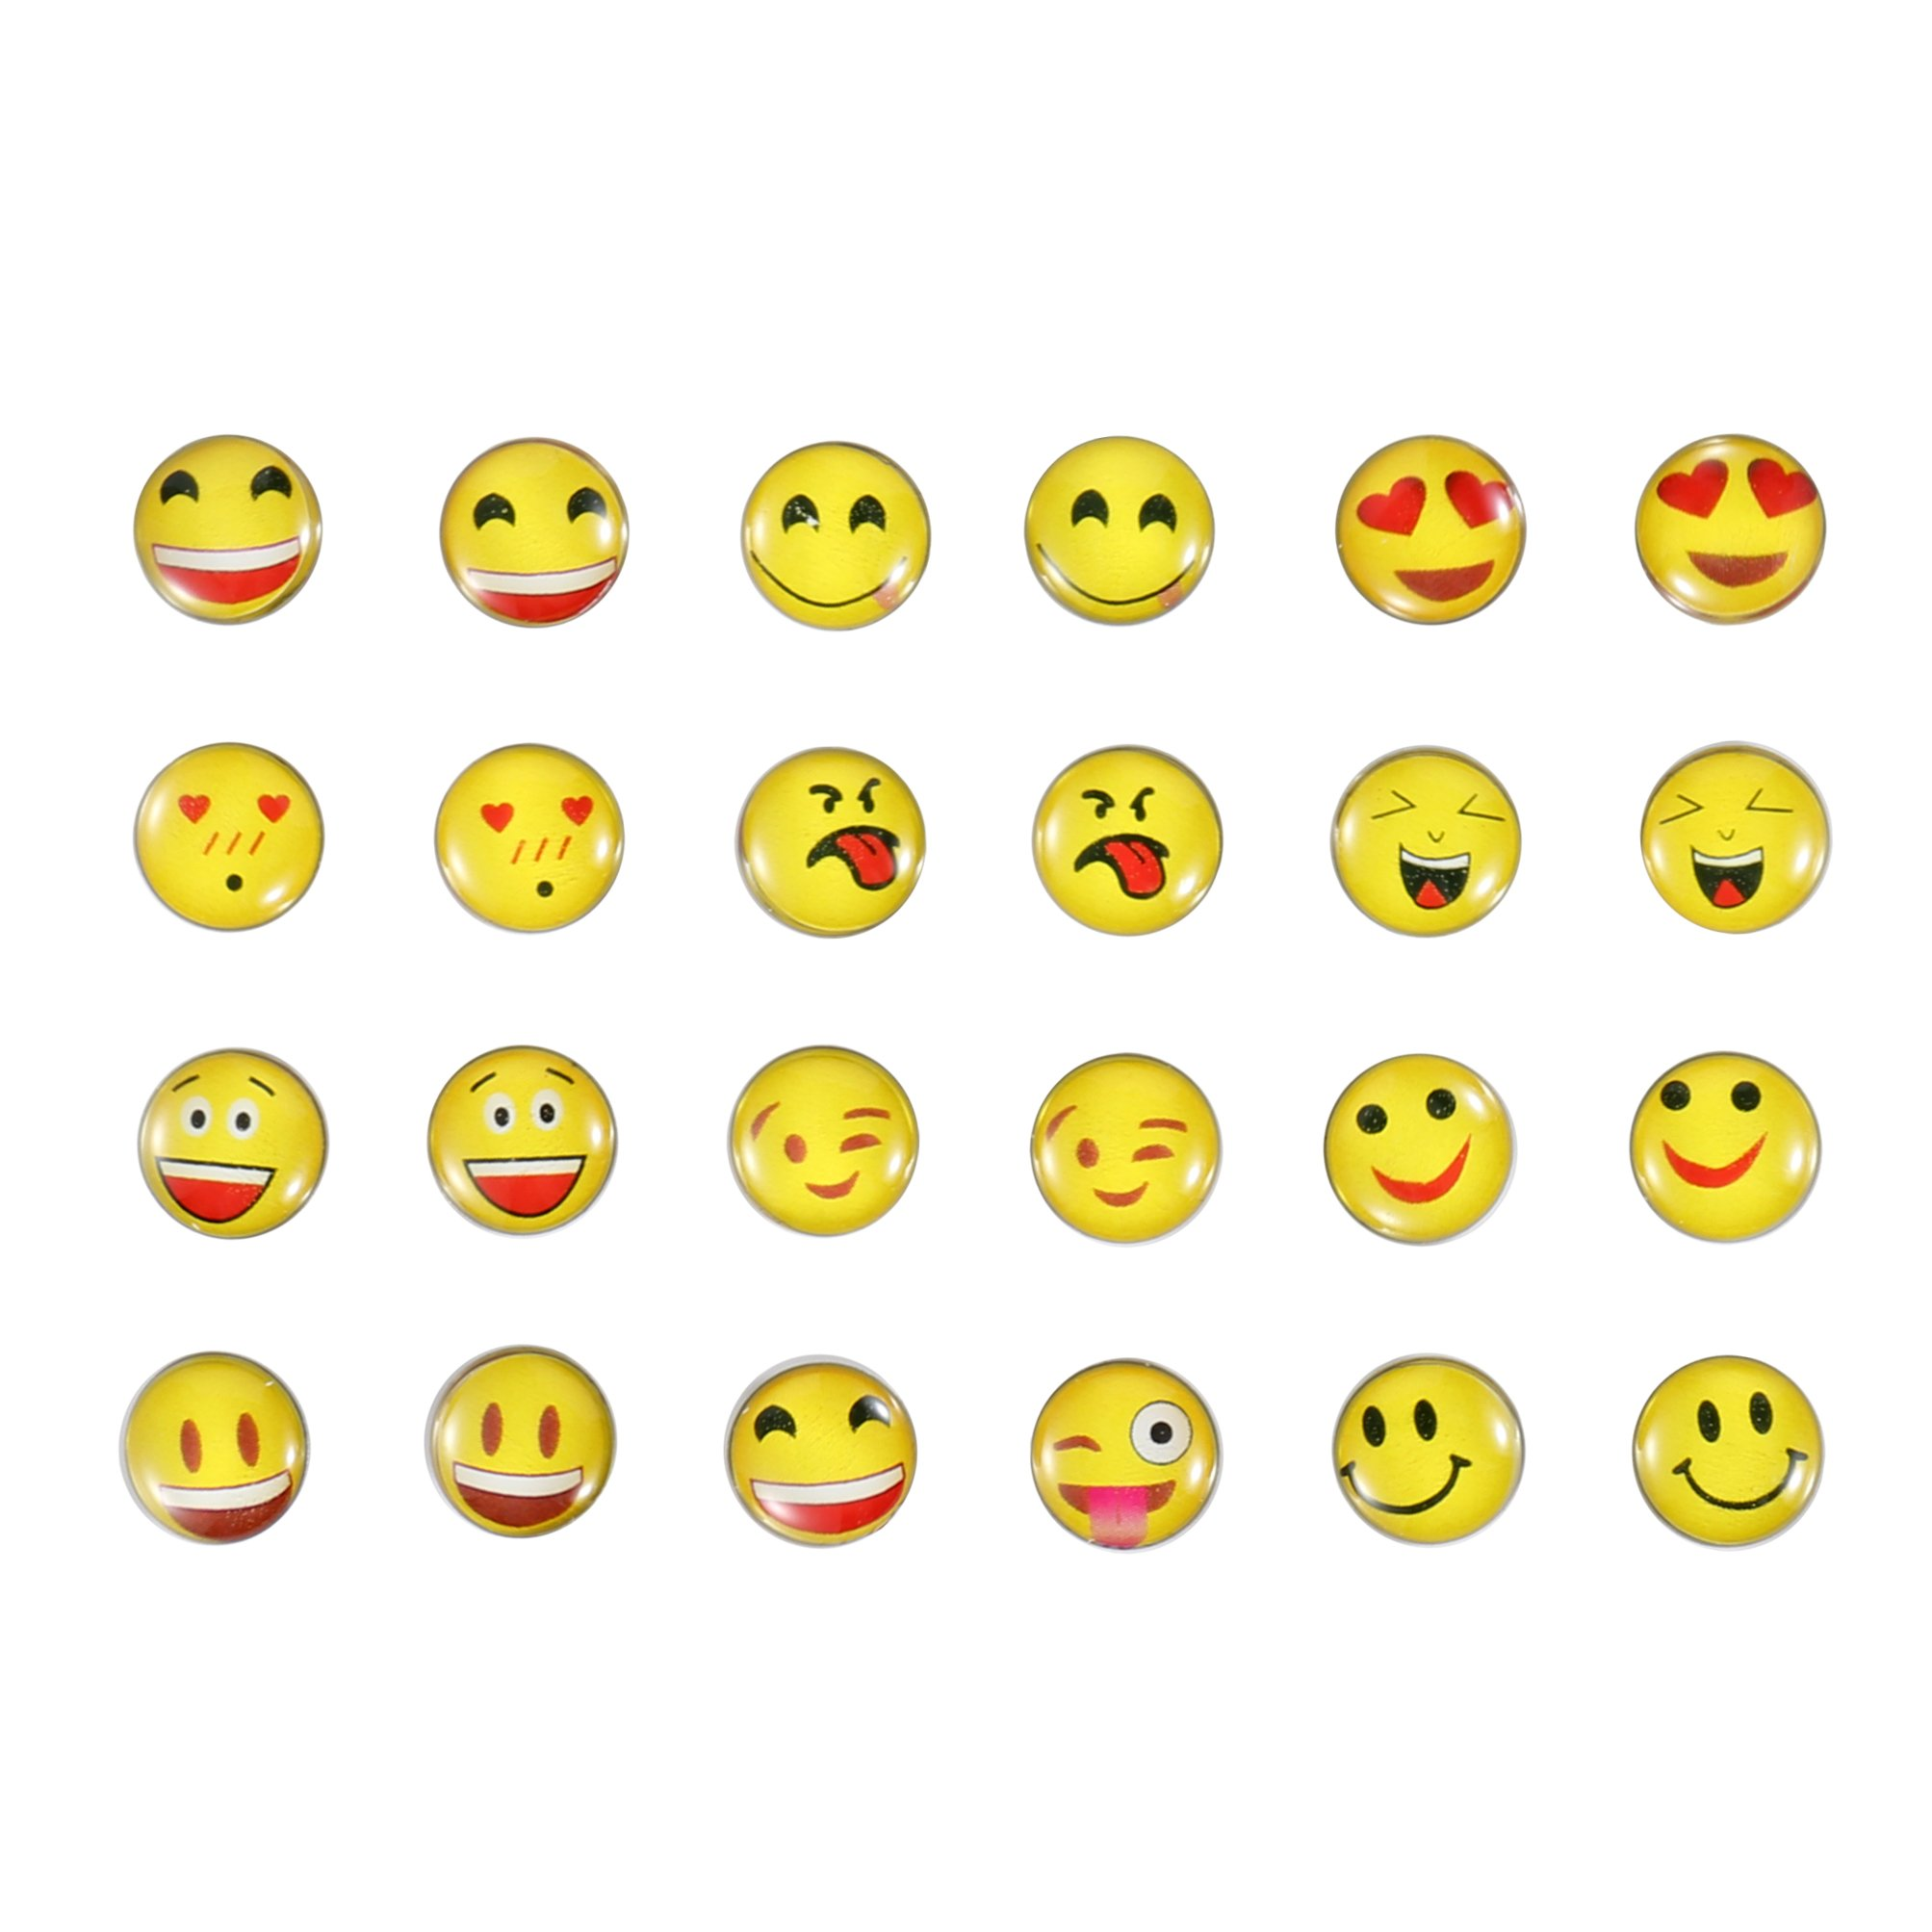 April Ya 12 Pairs Round Emoji Stud Earrings, Assorted Smiley Emoticon Earrings